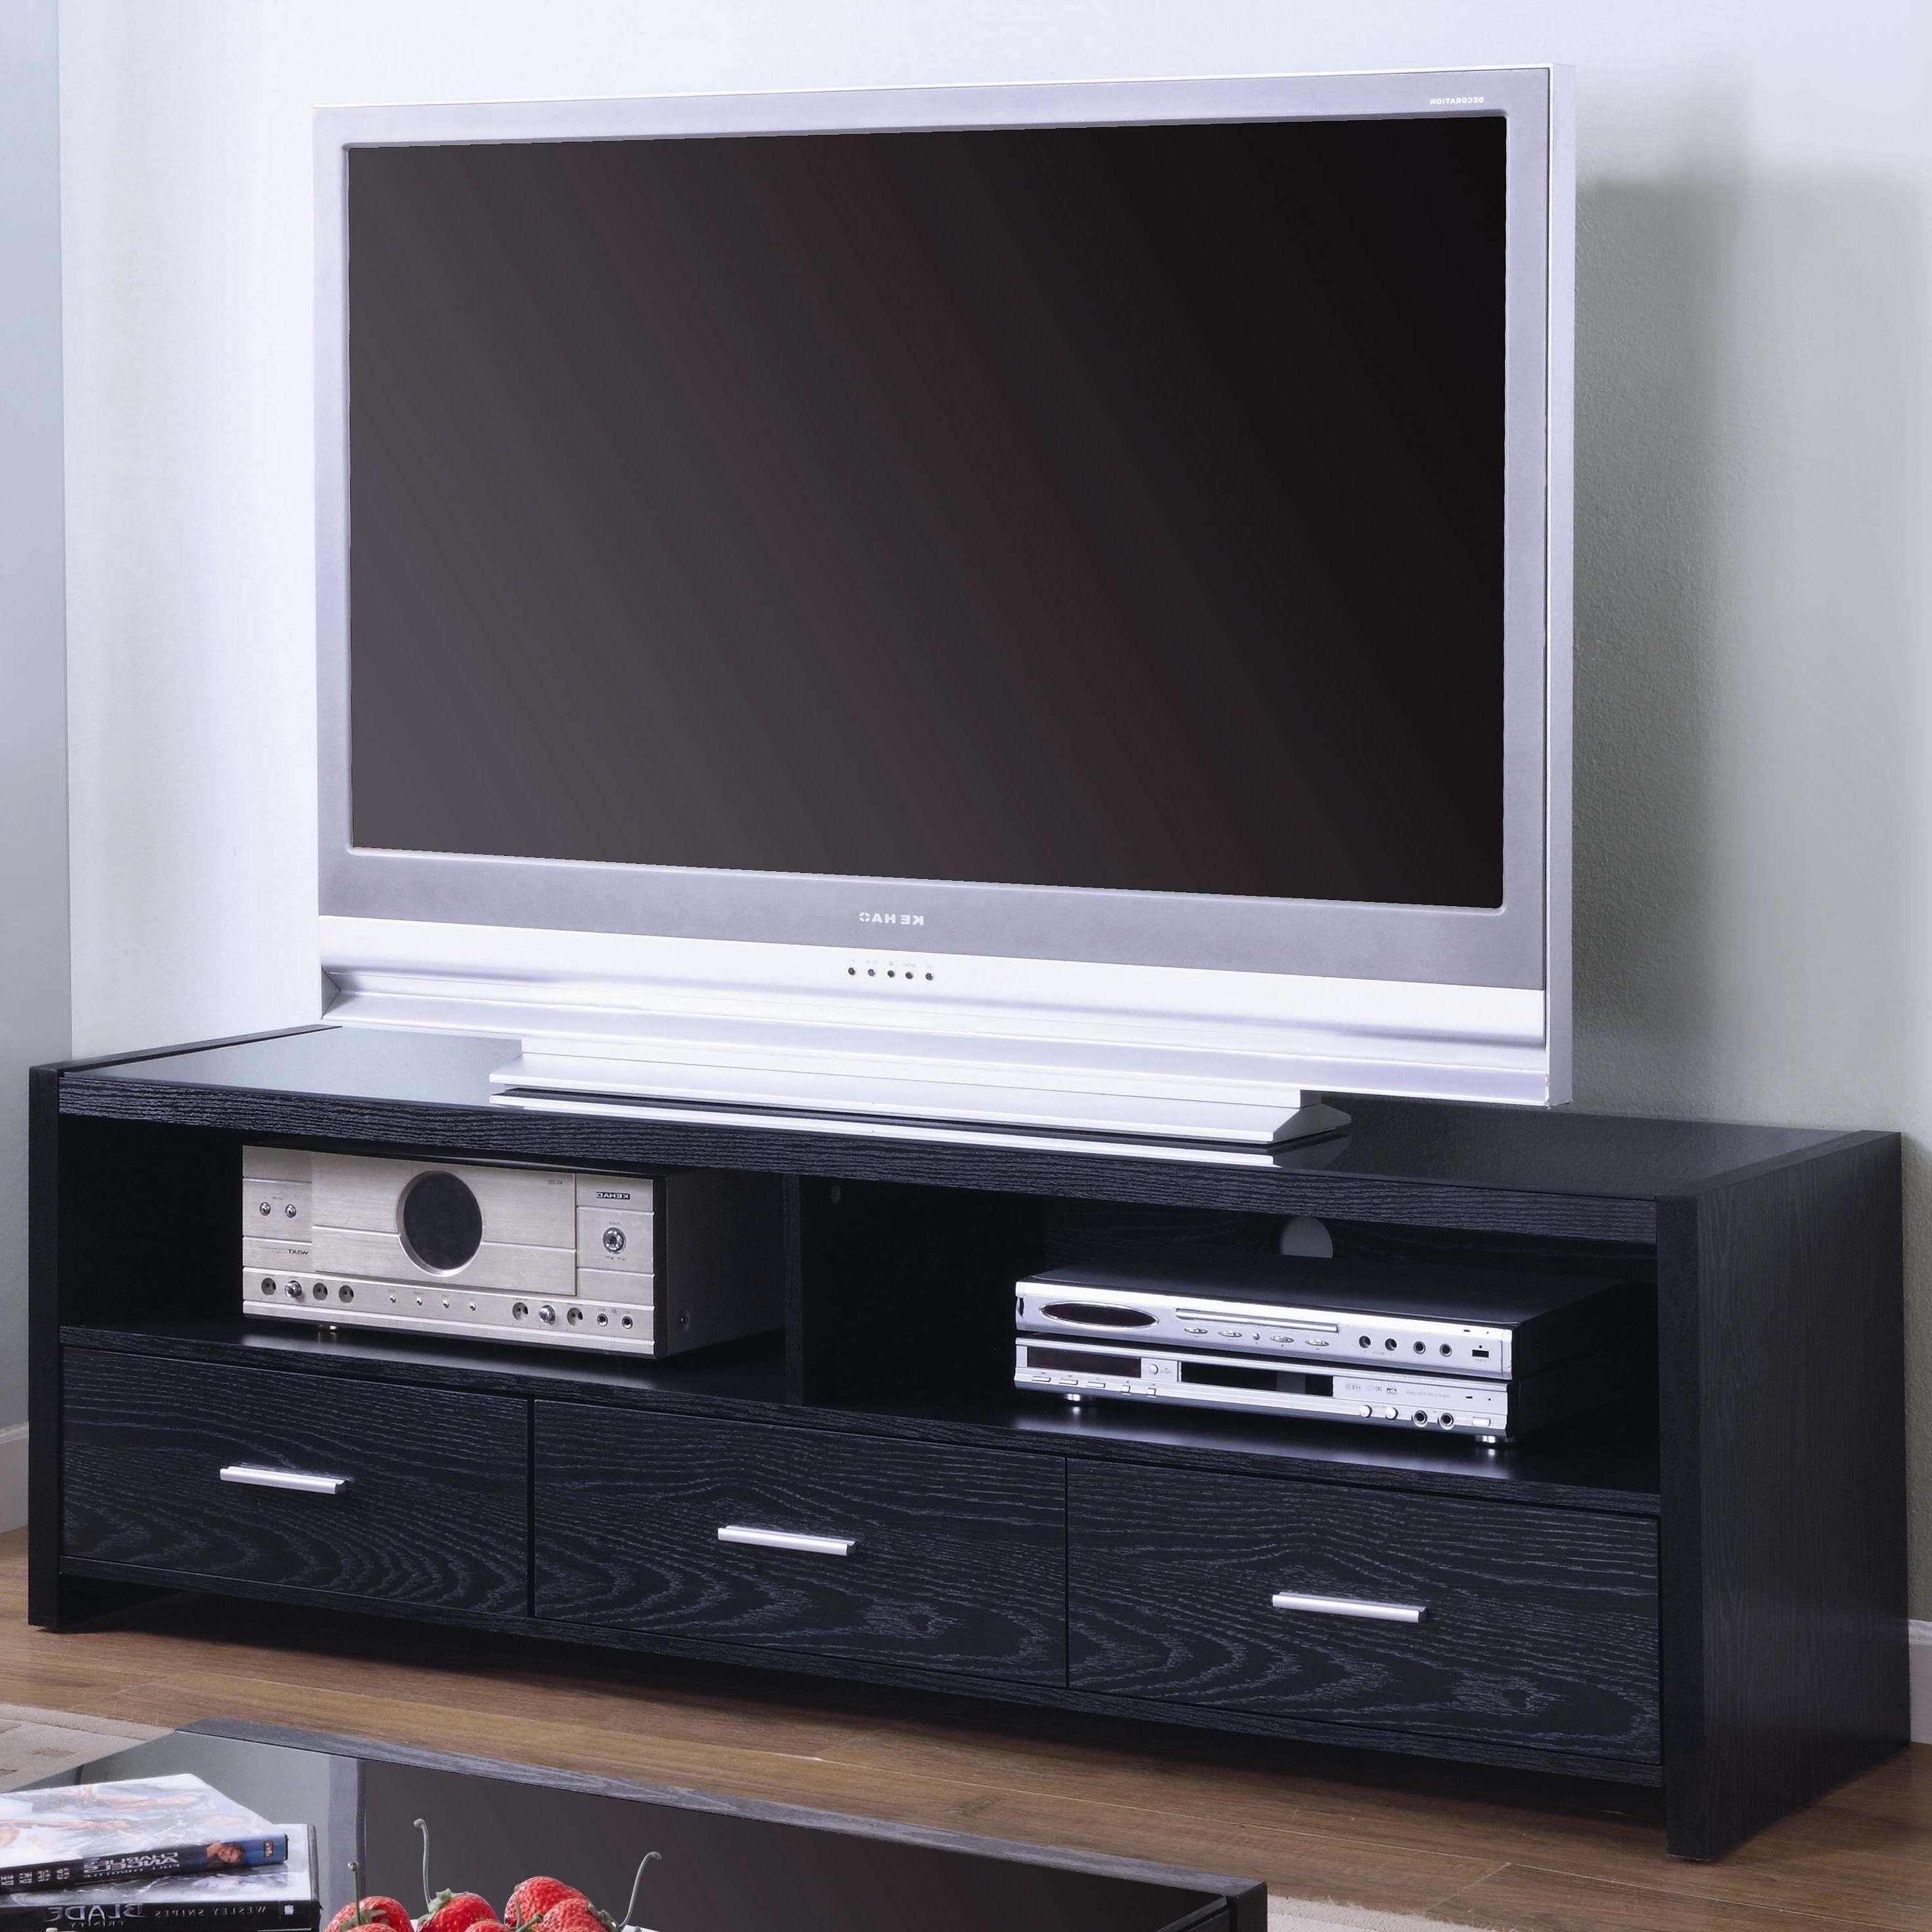 Tv Stands Contemporary Media Console With Shelves And Drawers For Black Tv Stands With Drawers (View 7 of 15)